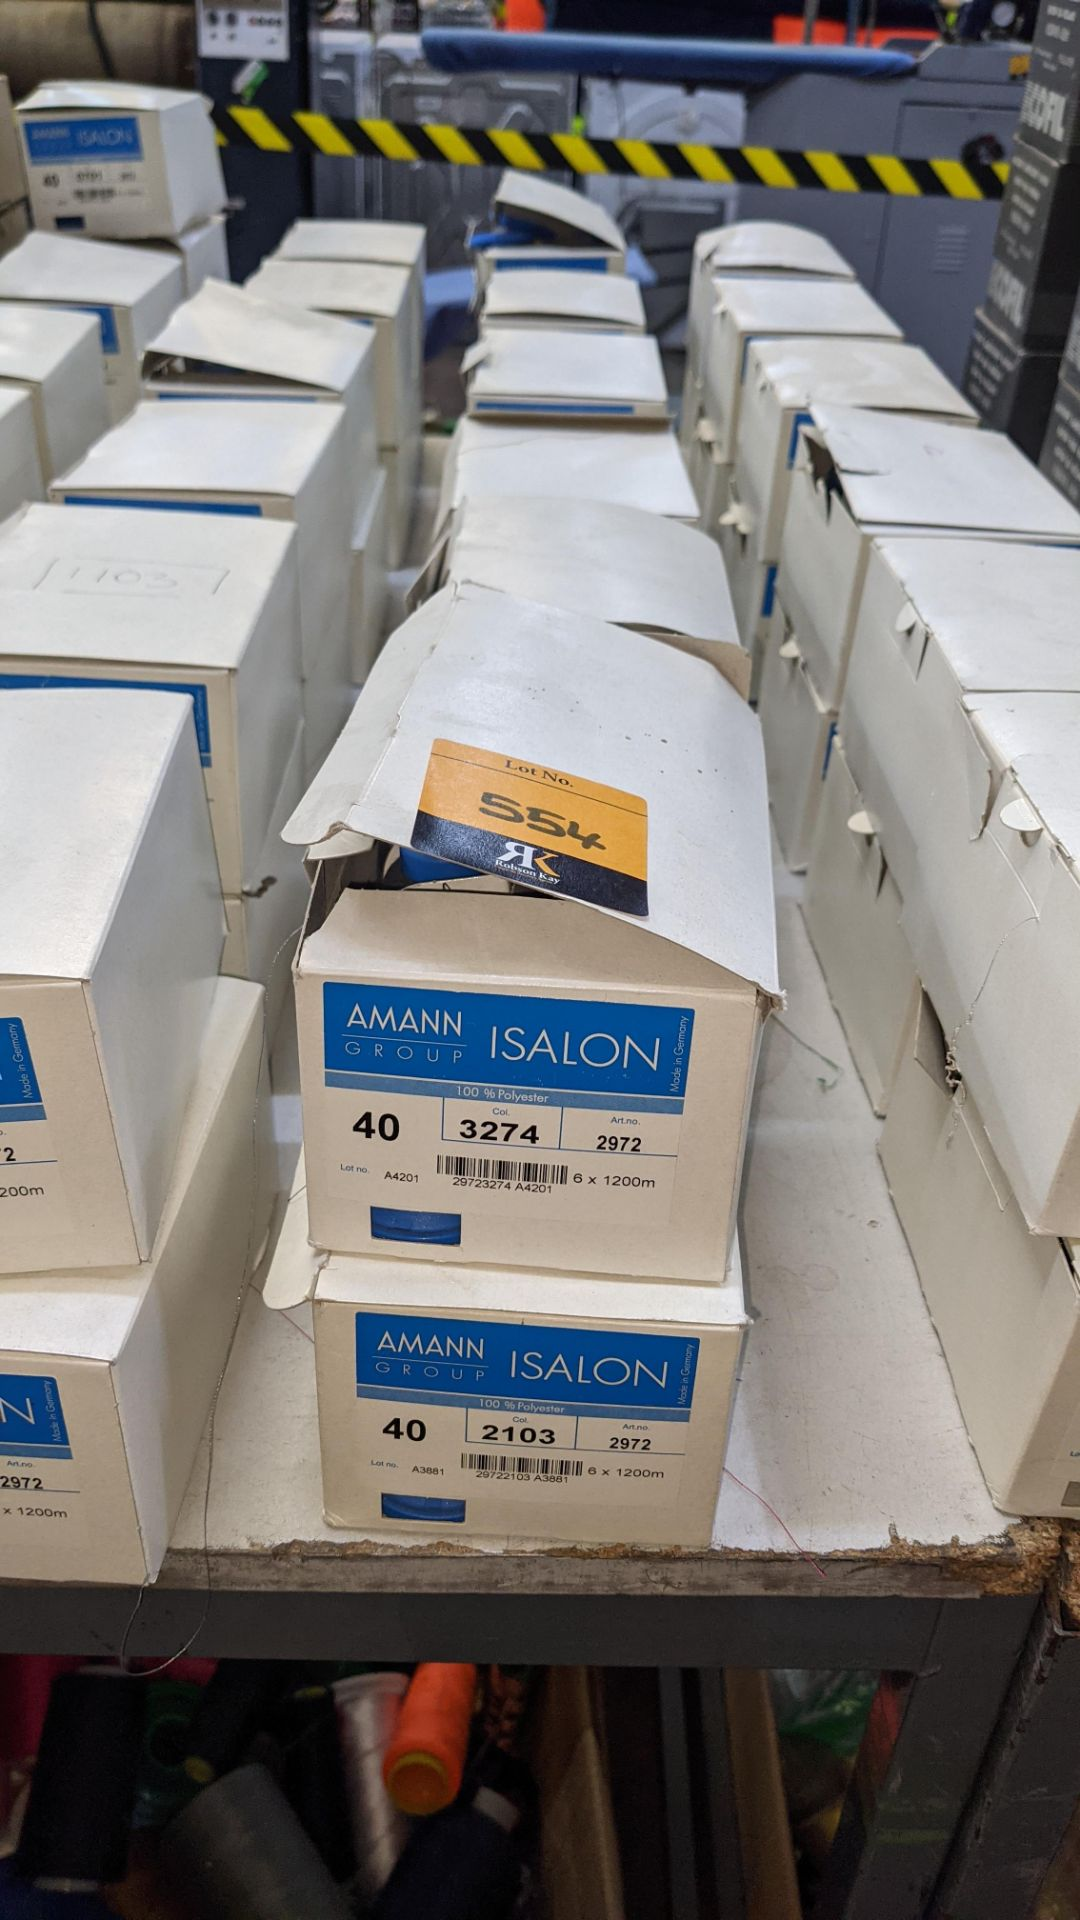 12 boxes of Amann Group ISALON 40 polyester embroidery thread - Image 2 of 11